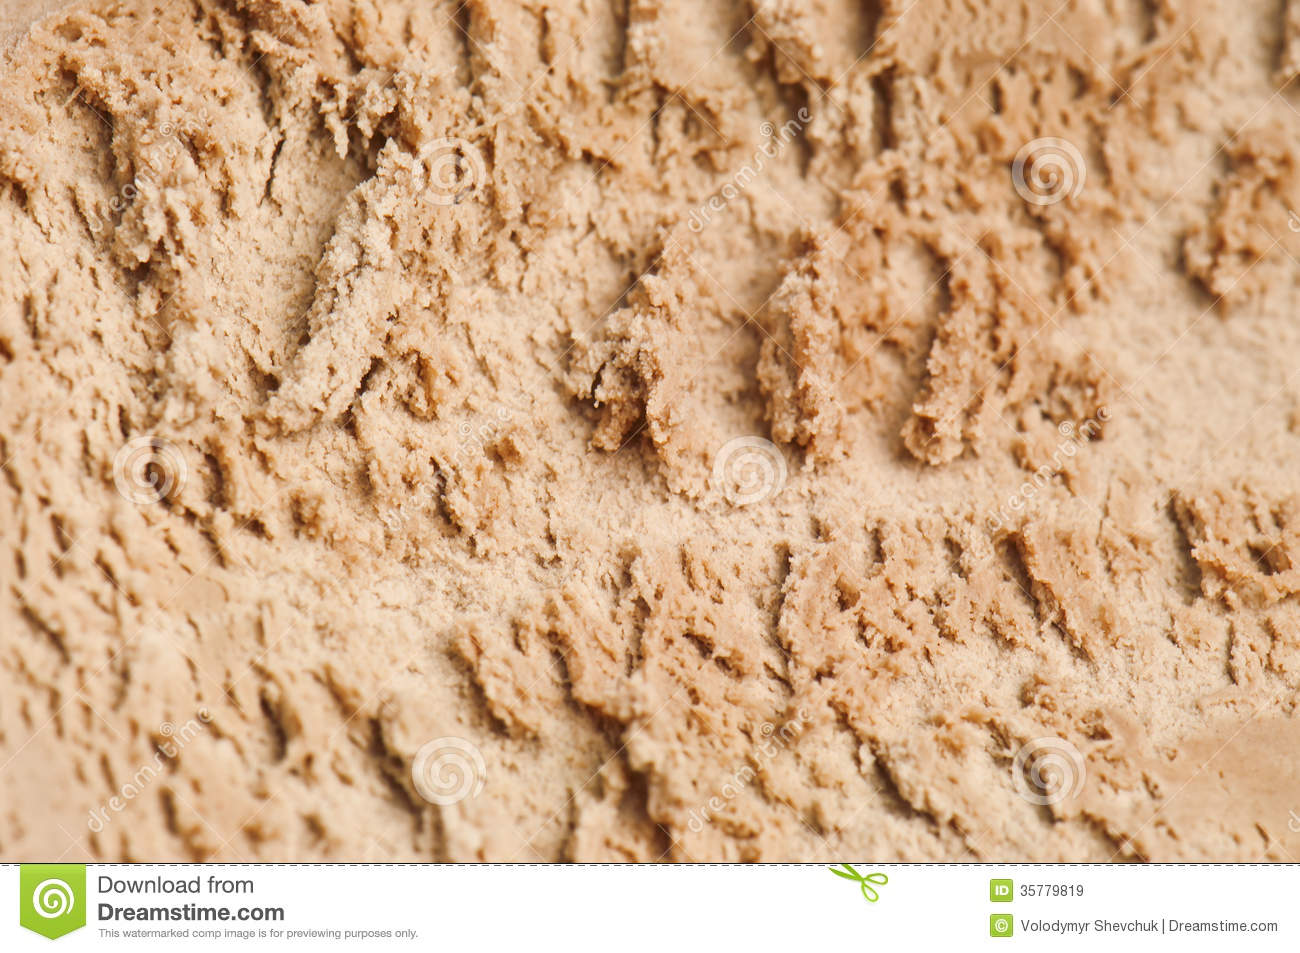 Ice Cream Texture Royalty Free Stock Images - Image: 35779819